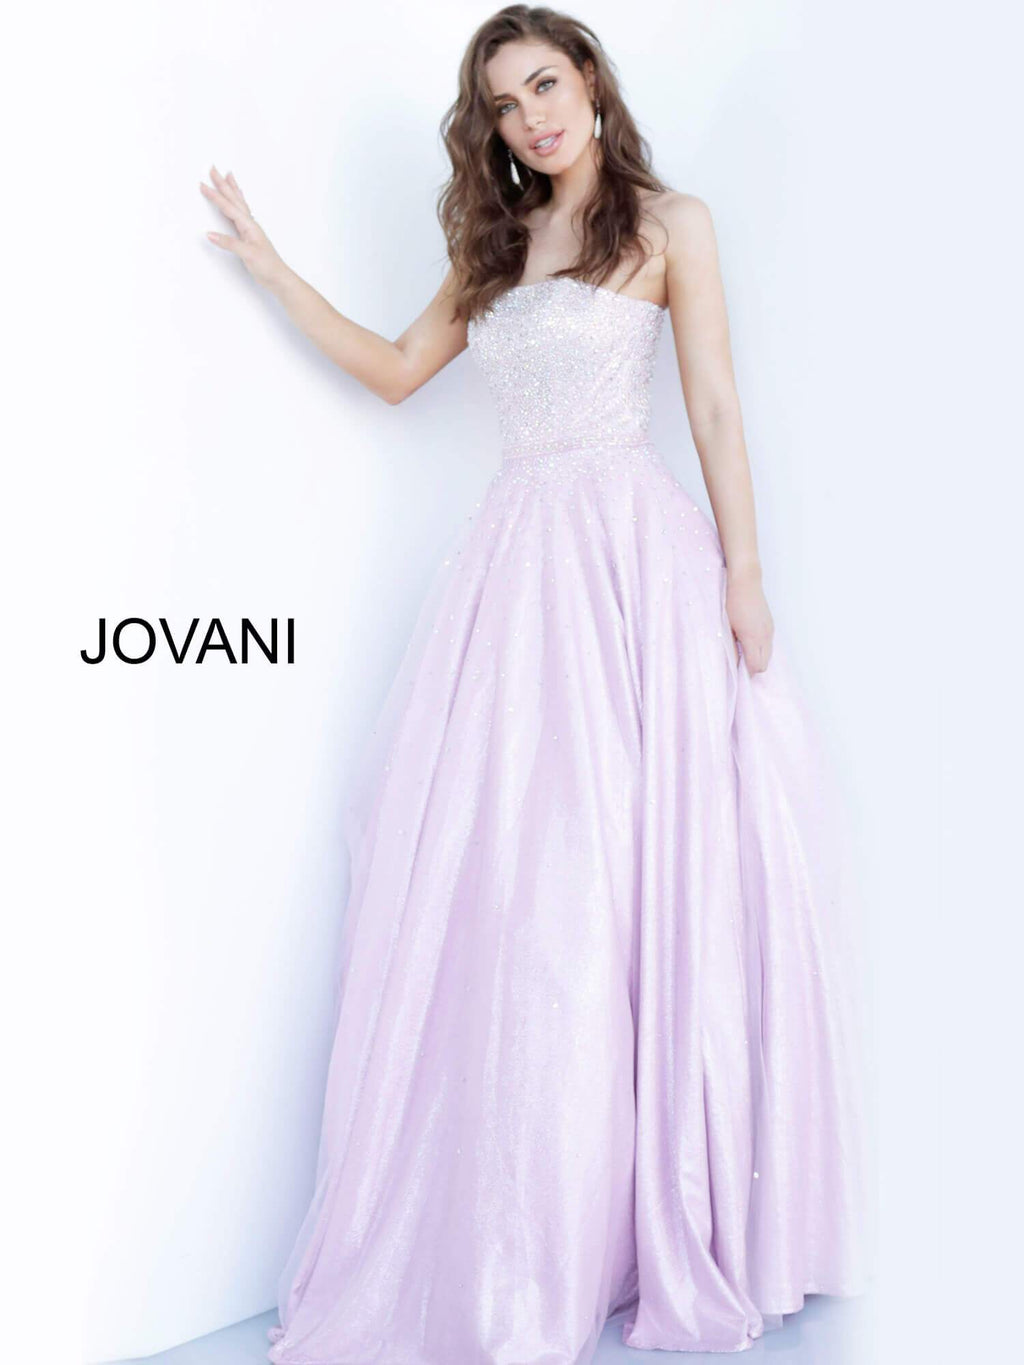 JOVANI 00462 Strapless Embellished Prom Ballgown - CYC Boutique